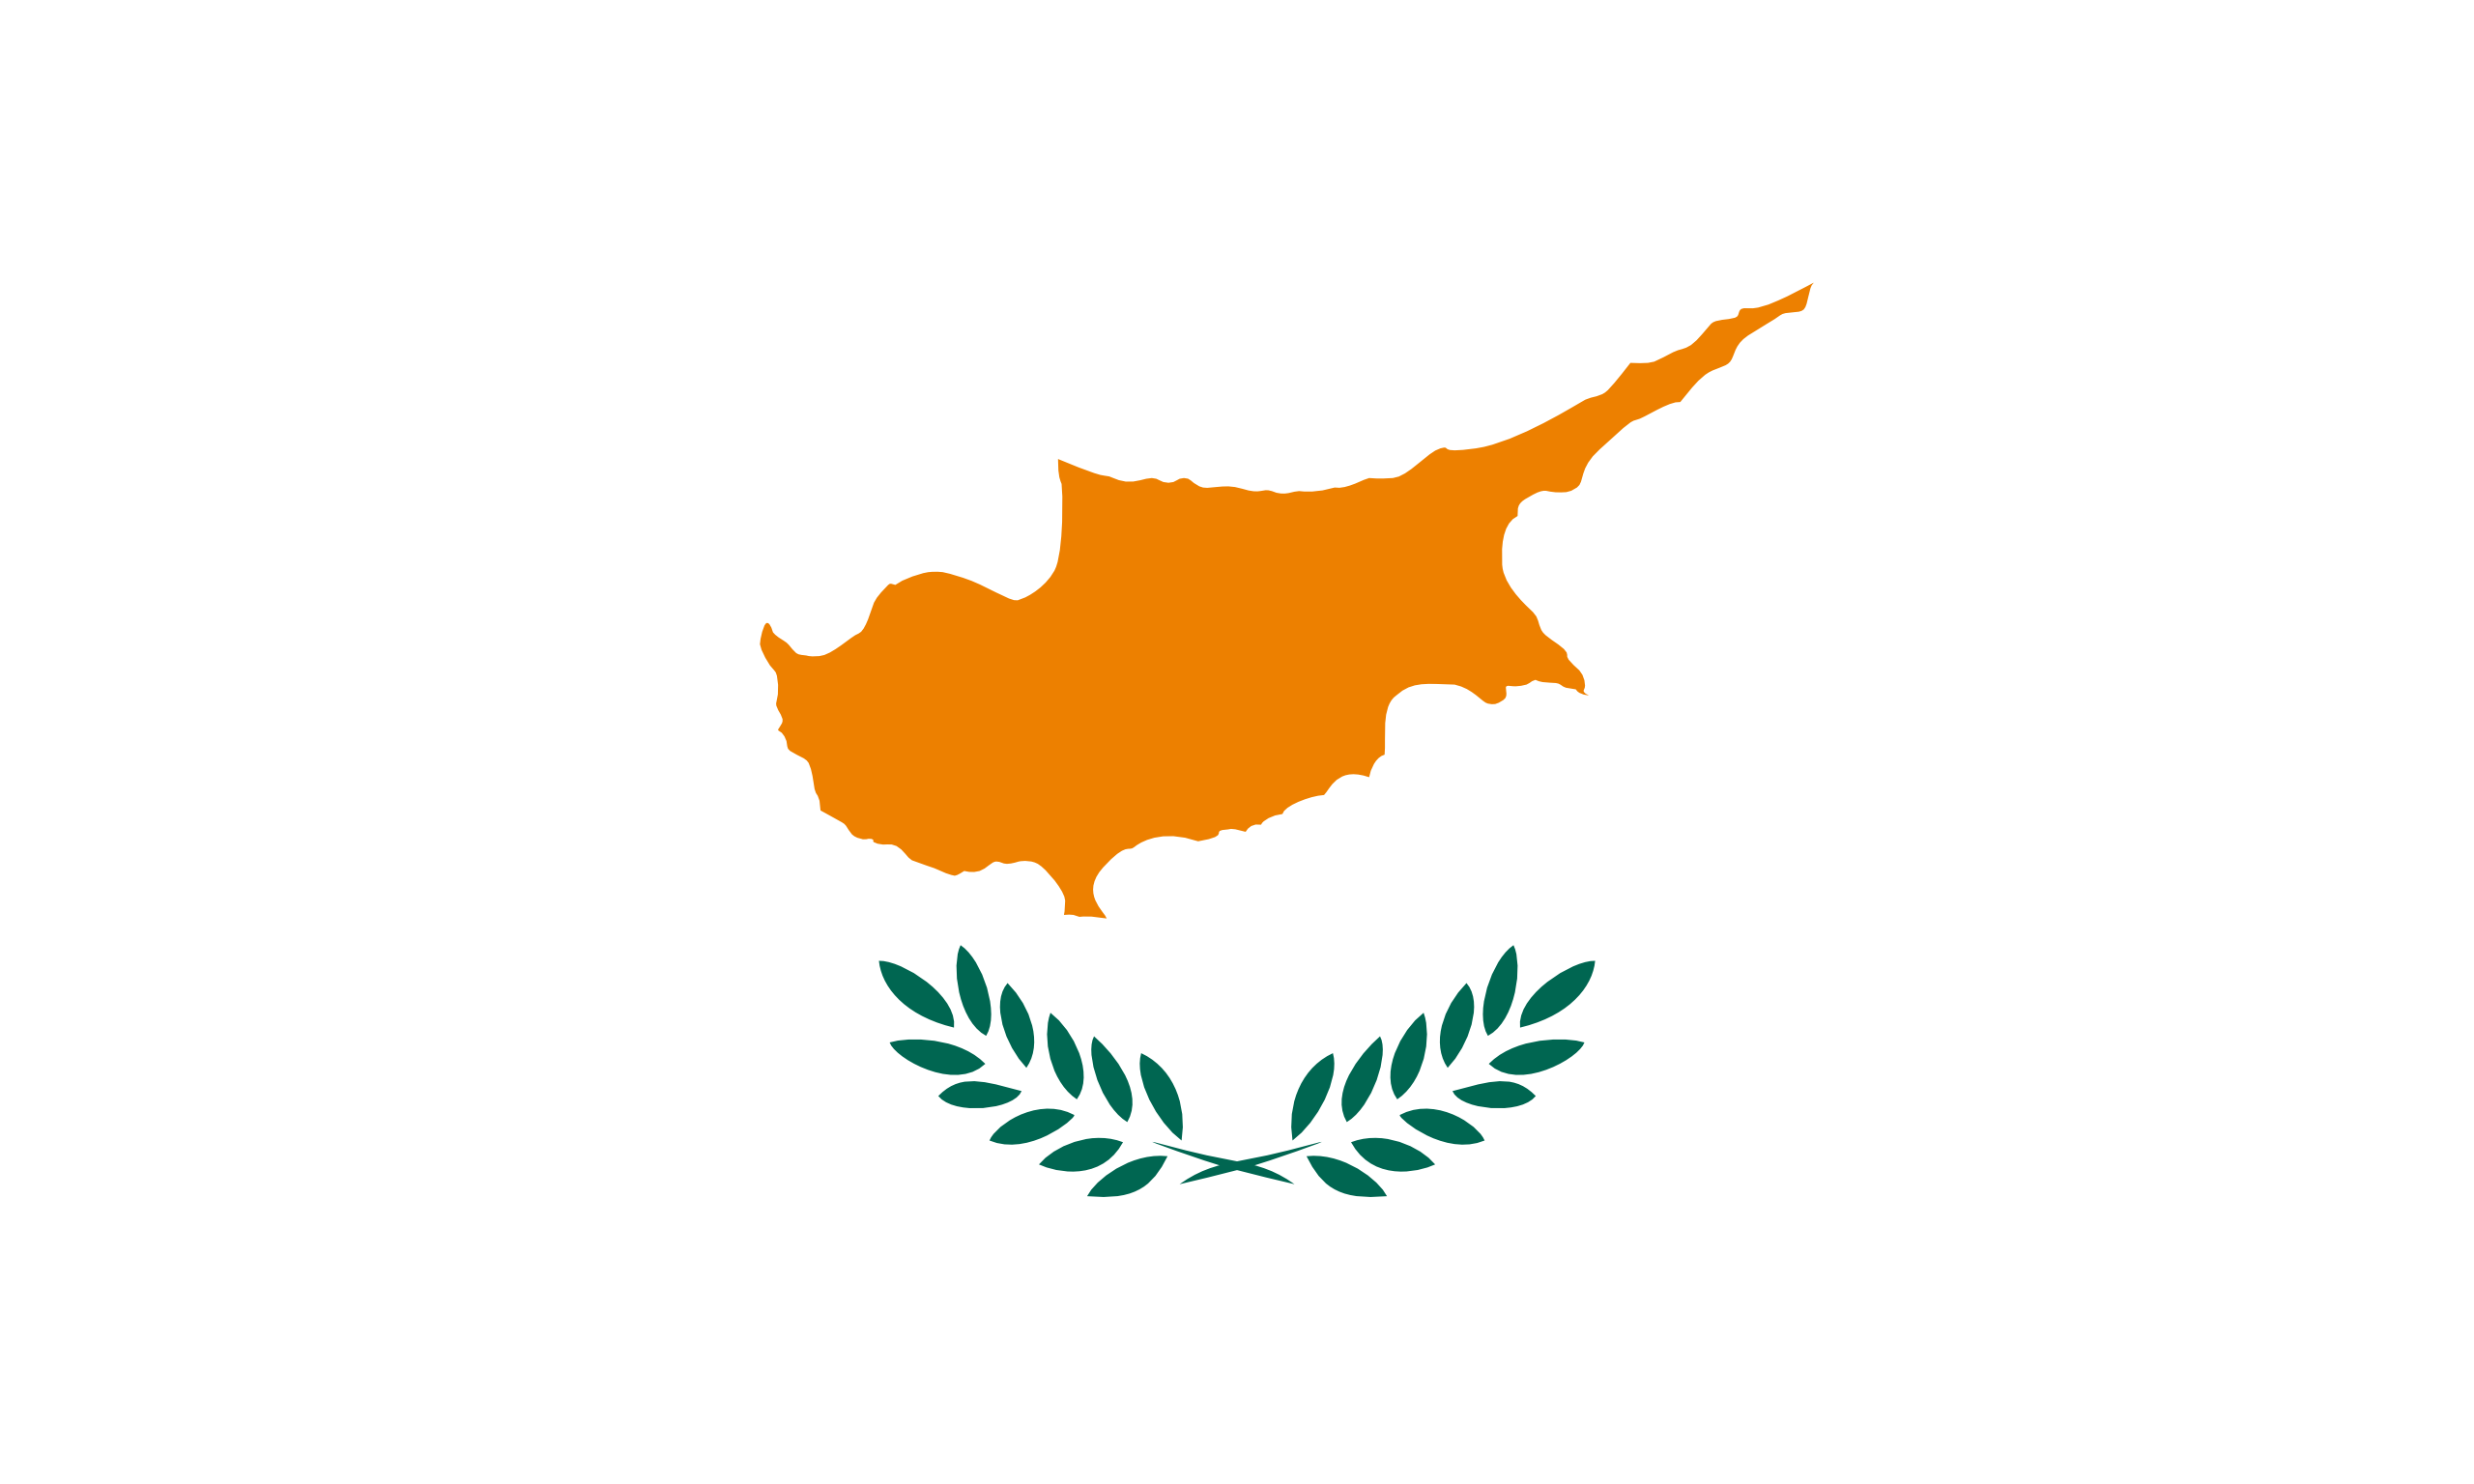 Republic of Cyprus flag